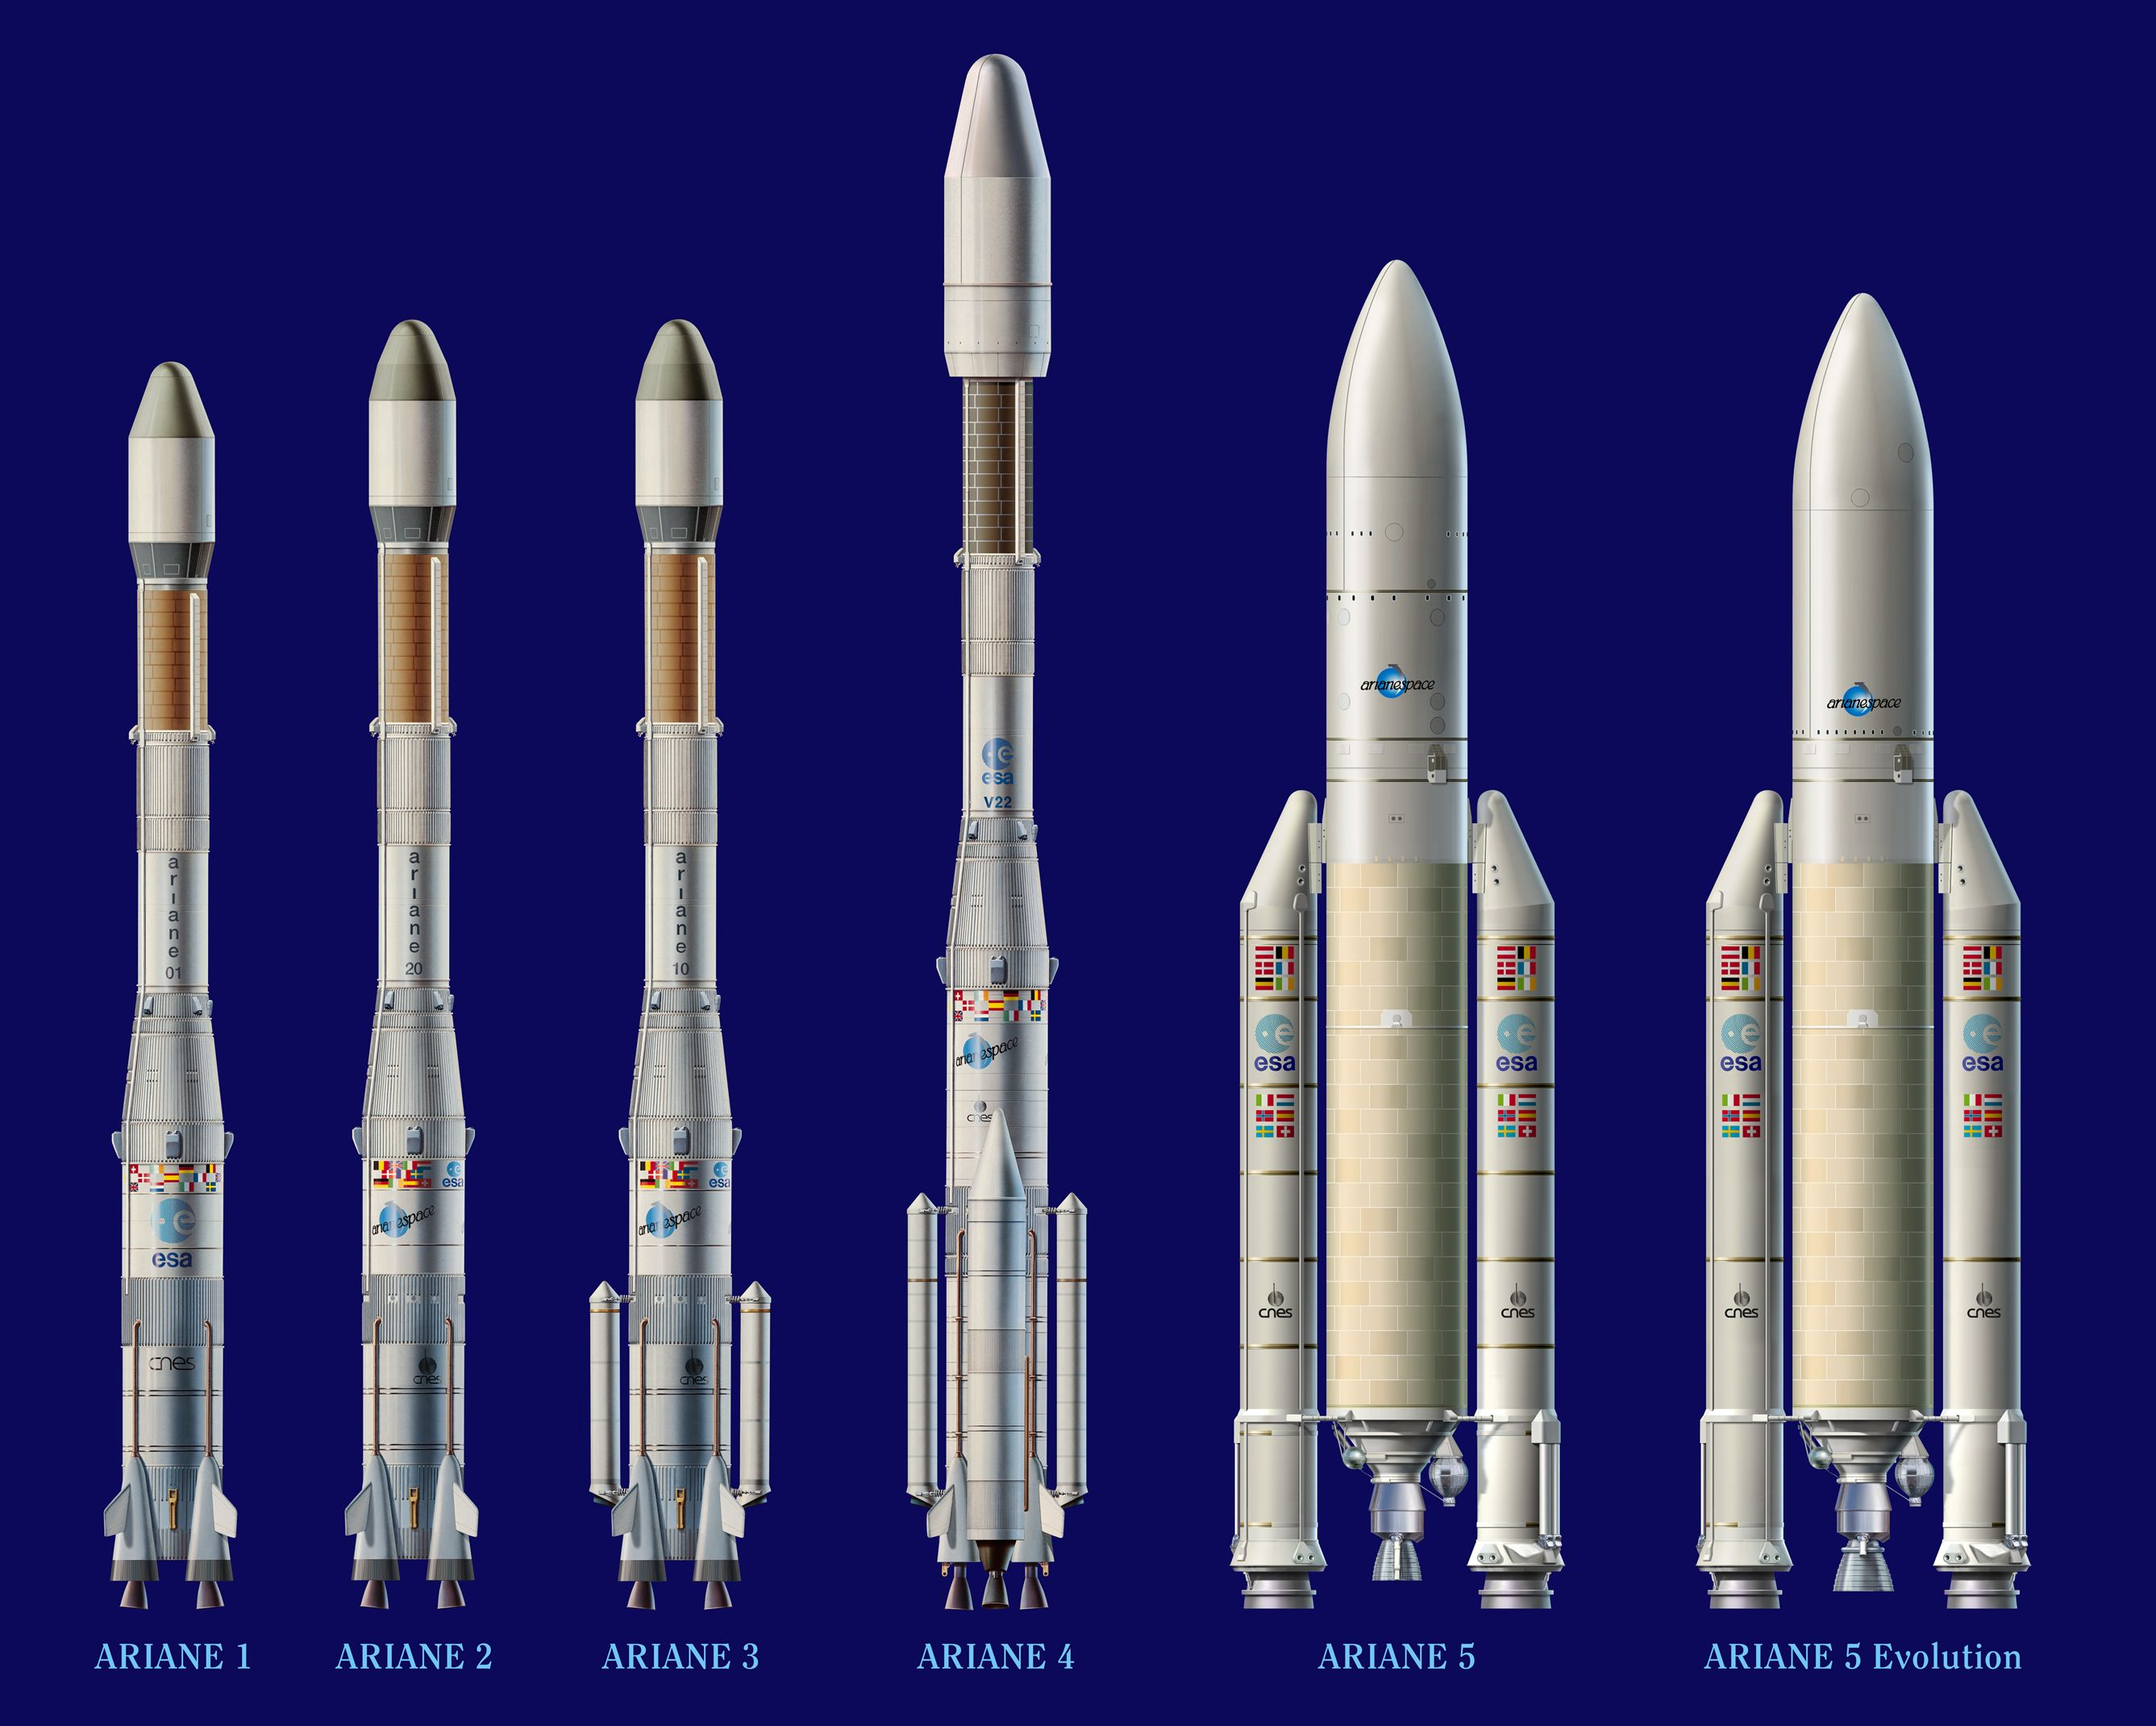 The_Ariane_launcher_family_artist_s_view